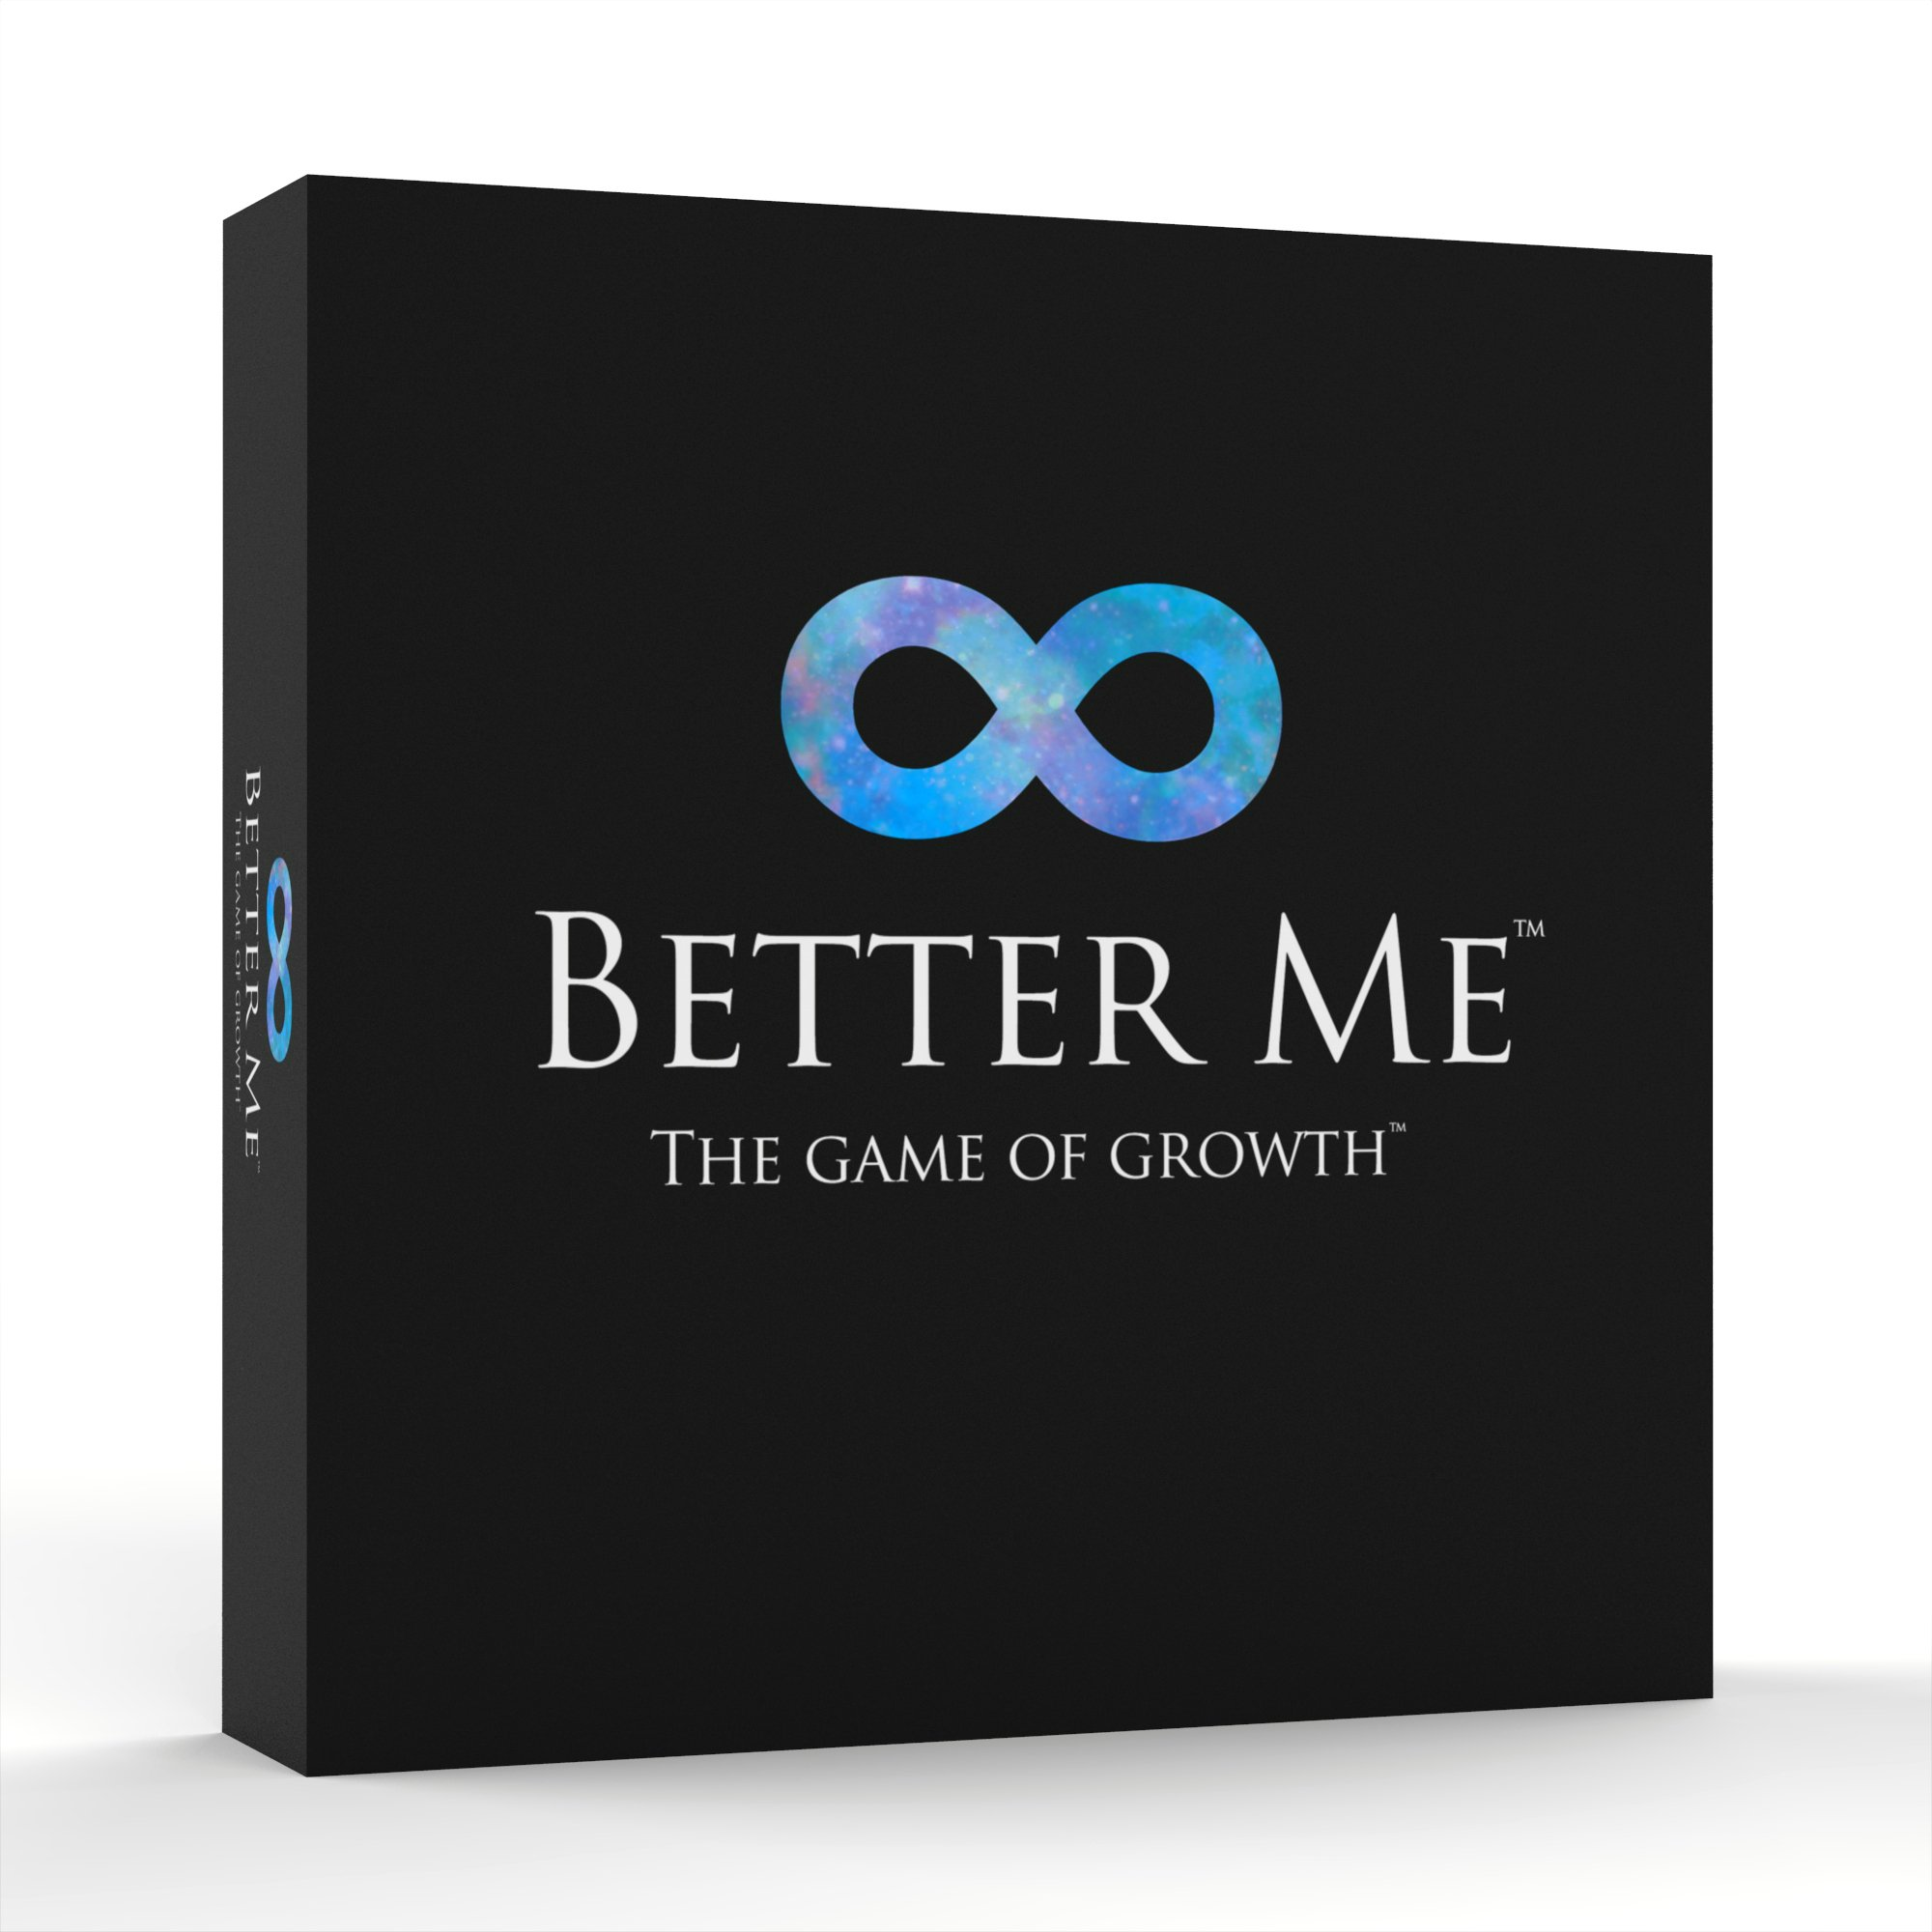 Better Me, Game of Growth: Self Improvement, Personal Development, Relationships, Positive Thinking